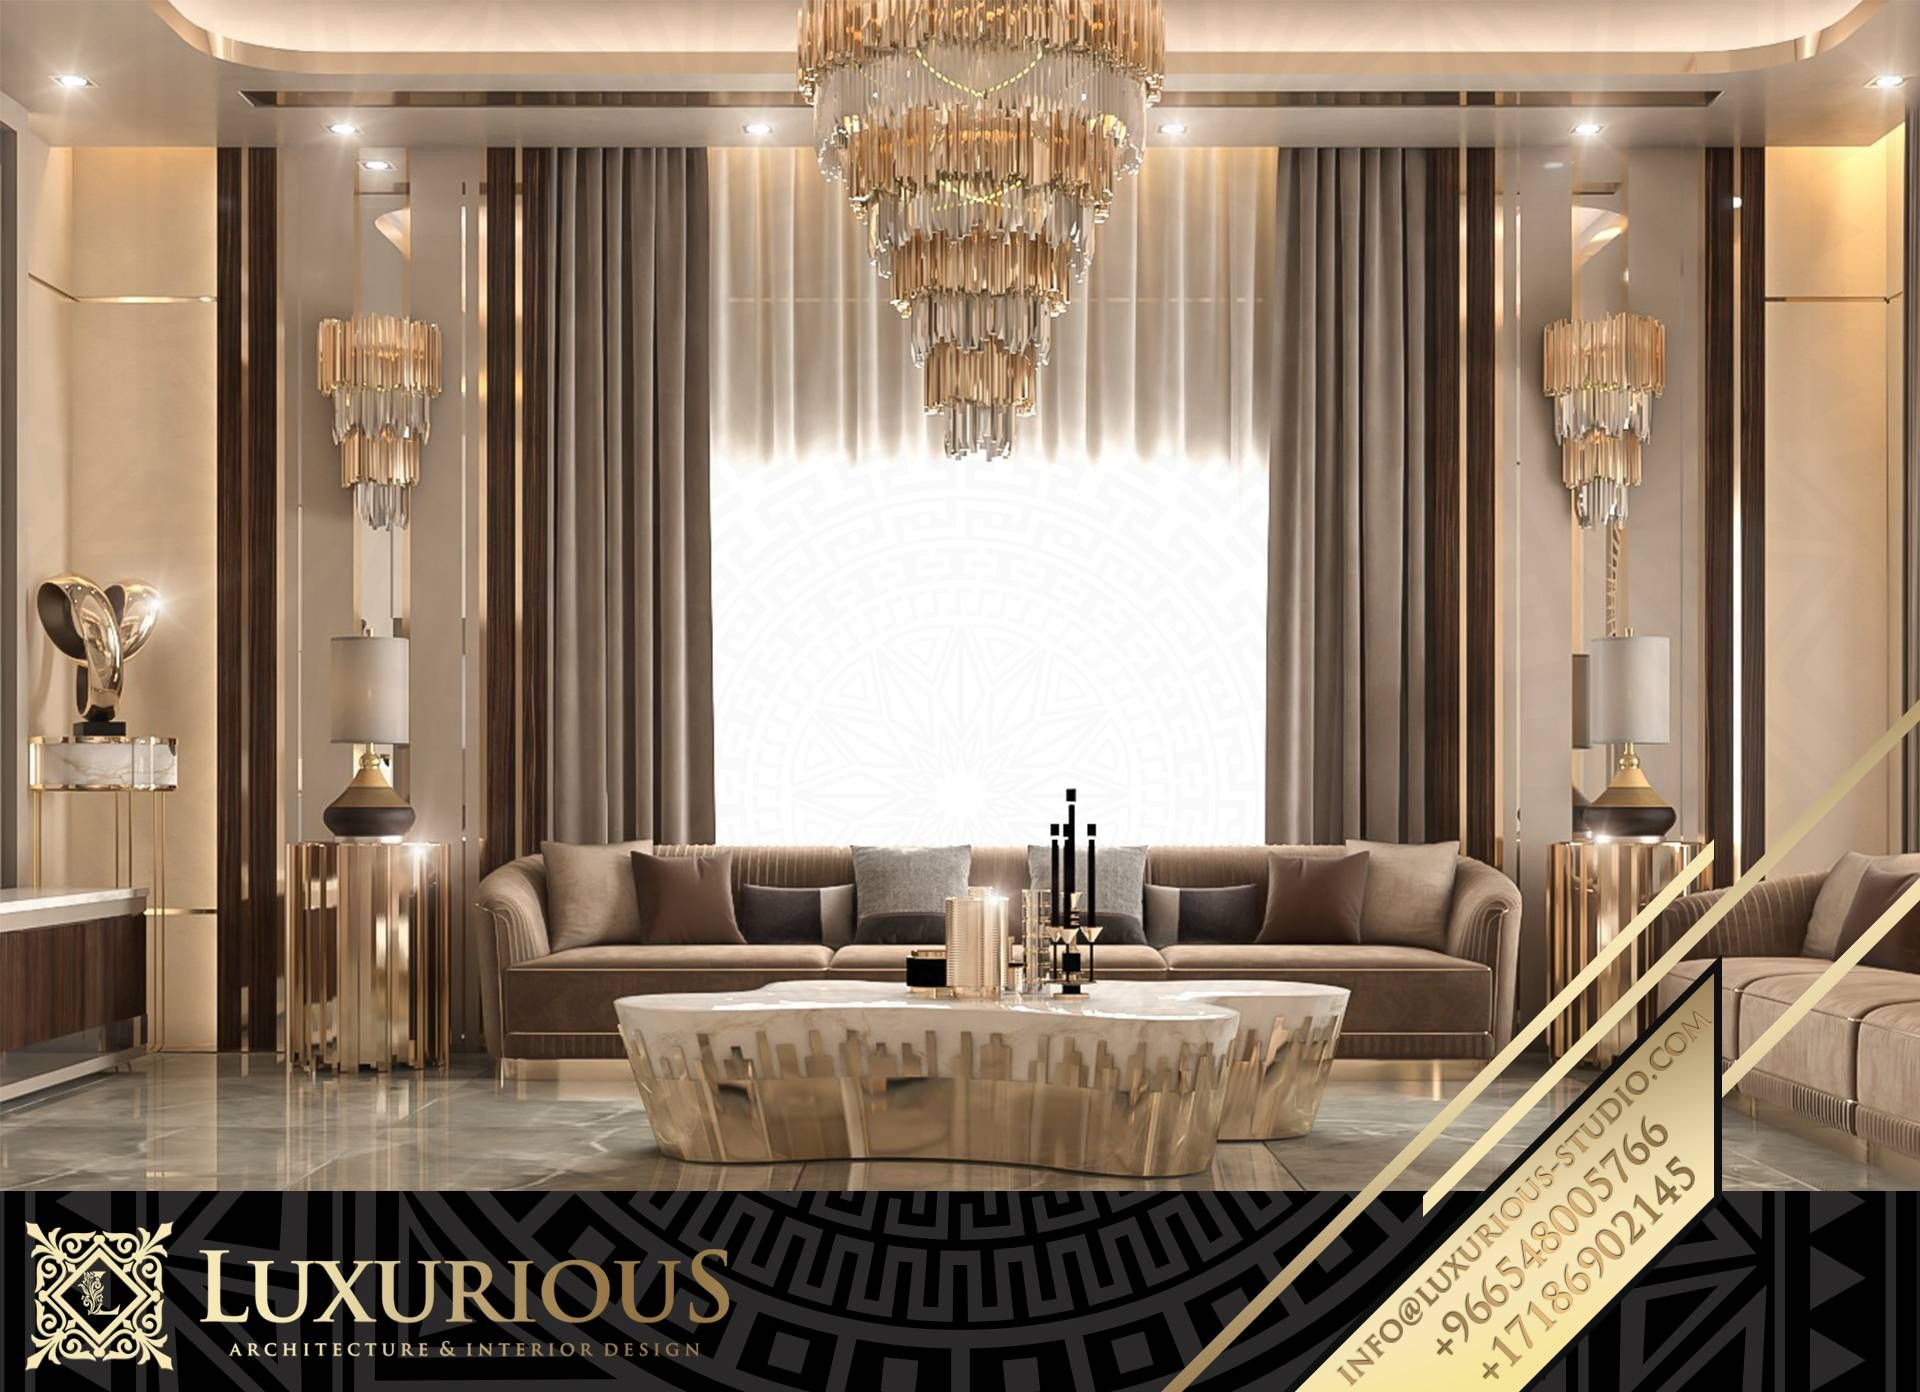 Interior Design Gallery Luxury Interior Design Saudi Arabia Interior Design Company Modern Luxury Interior Interior Design Gallery Living Room Decor Modern